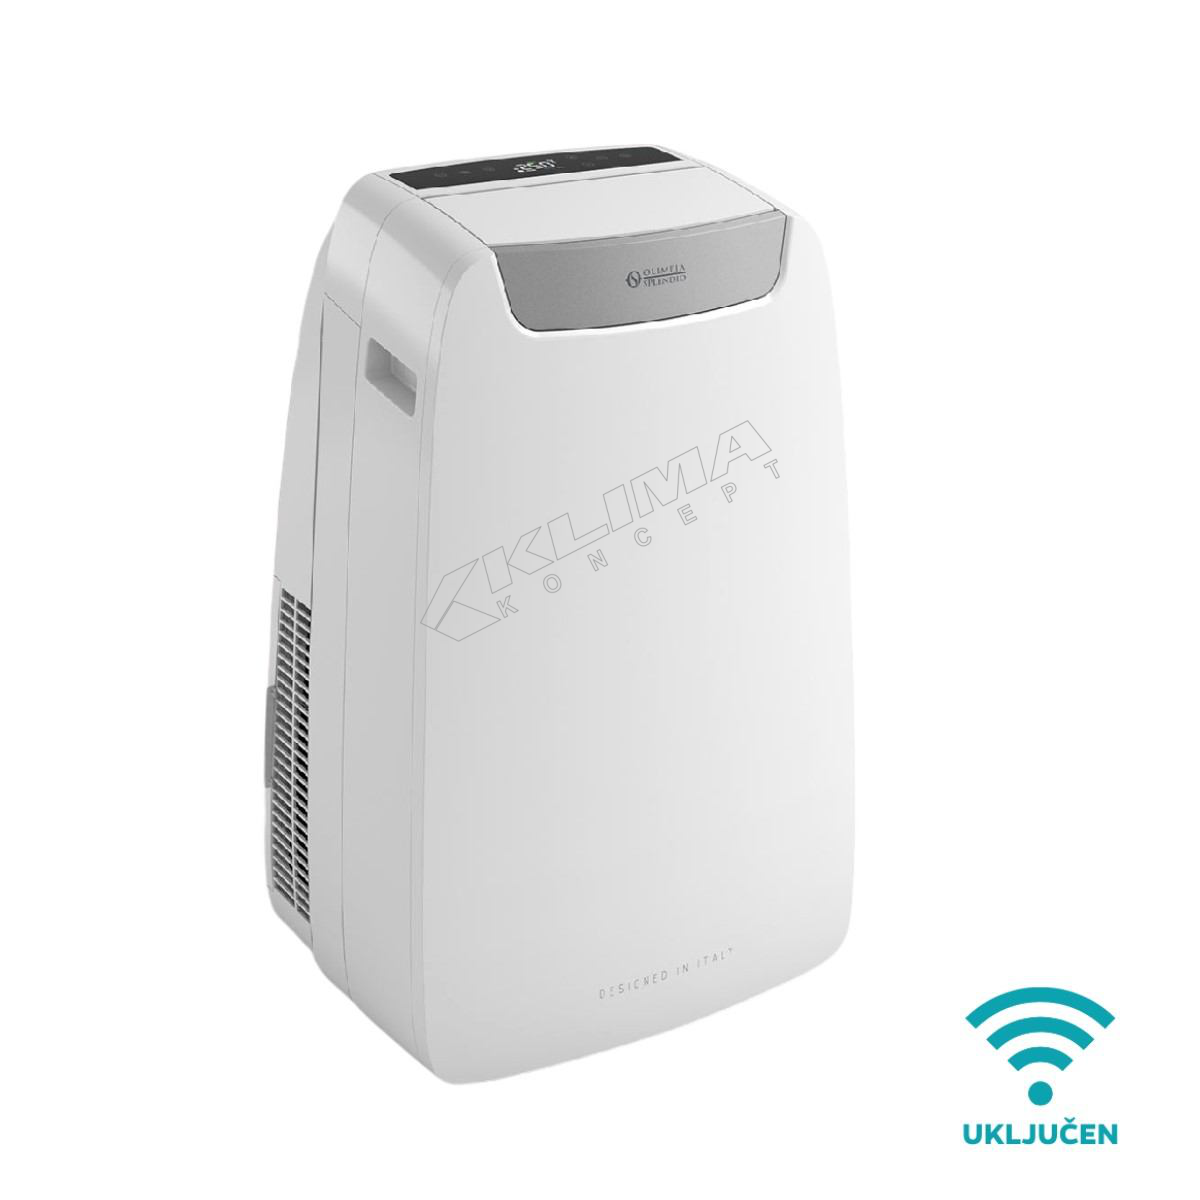 OLIMPIA SPLENDID DOLCECLIMA AIR PRO 14 HP WIFI